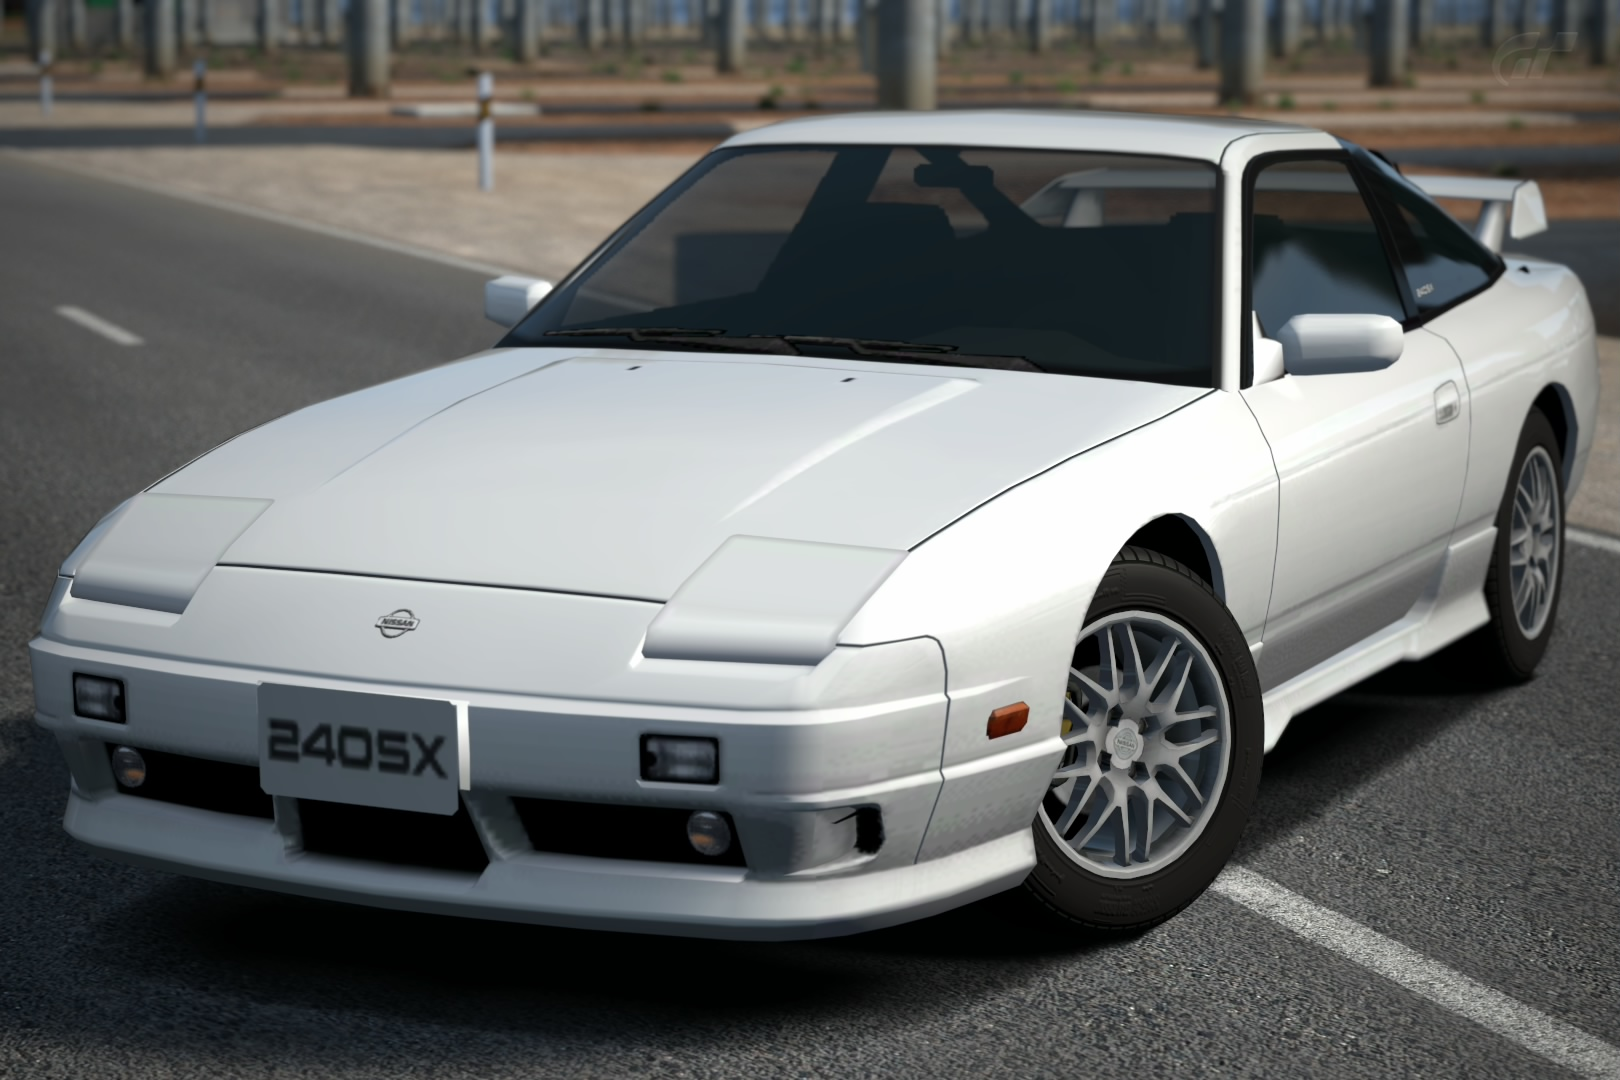 nissan 240sx 39 96 gran turismo wiki fandom powered by wikia. Black Bedroom Furniture Sets. Home Design Ideas